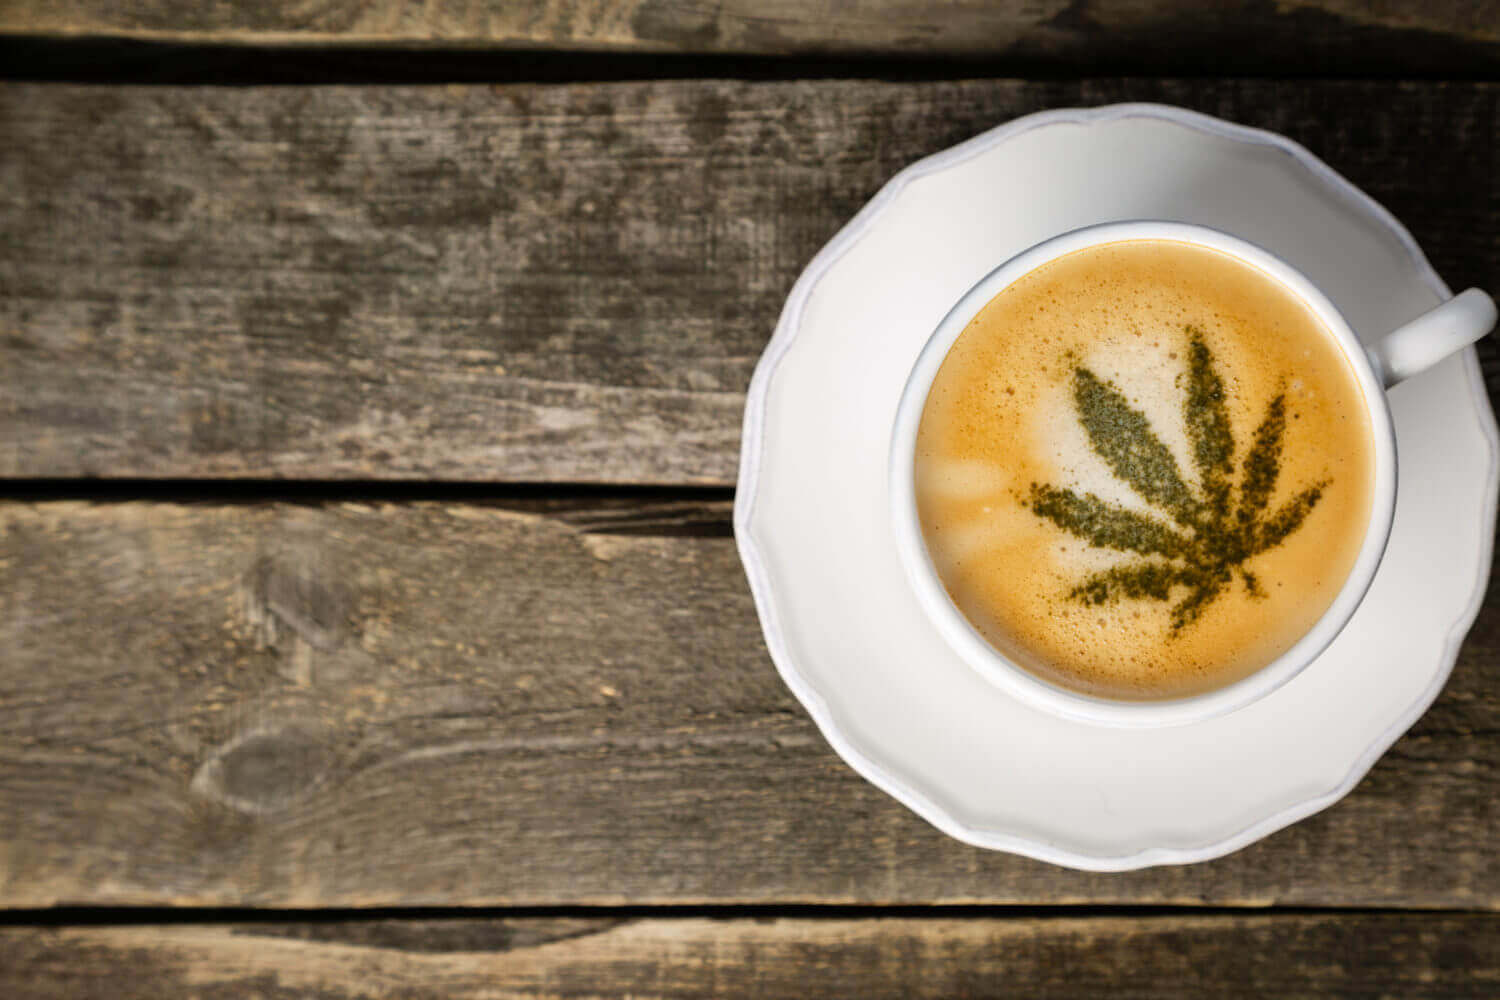 Weed leaf in a coffee cup